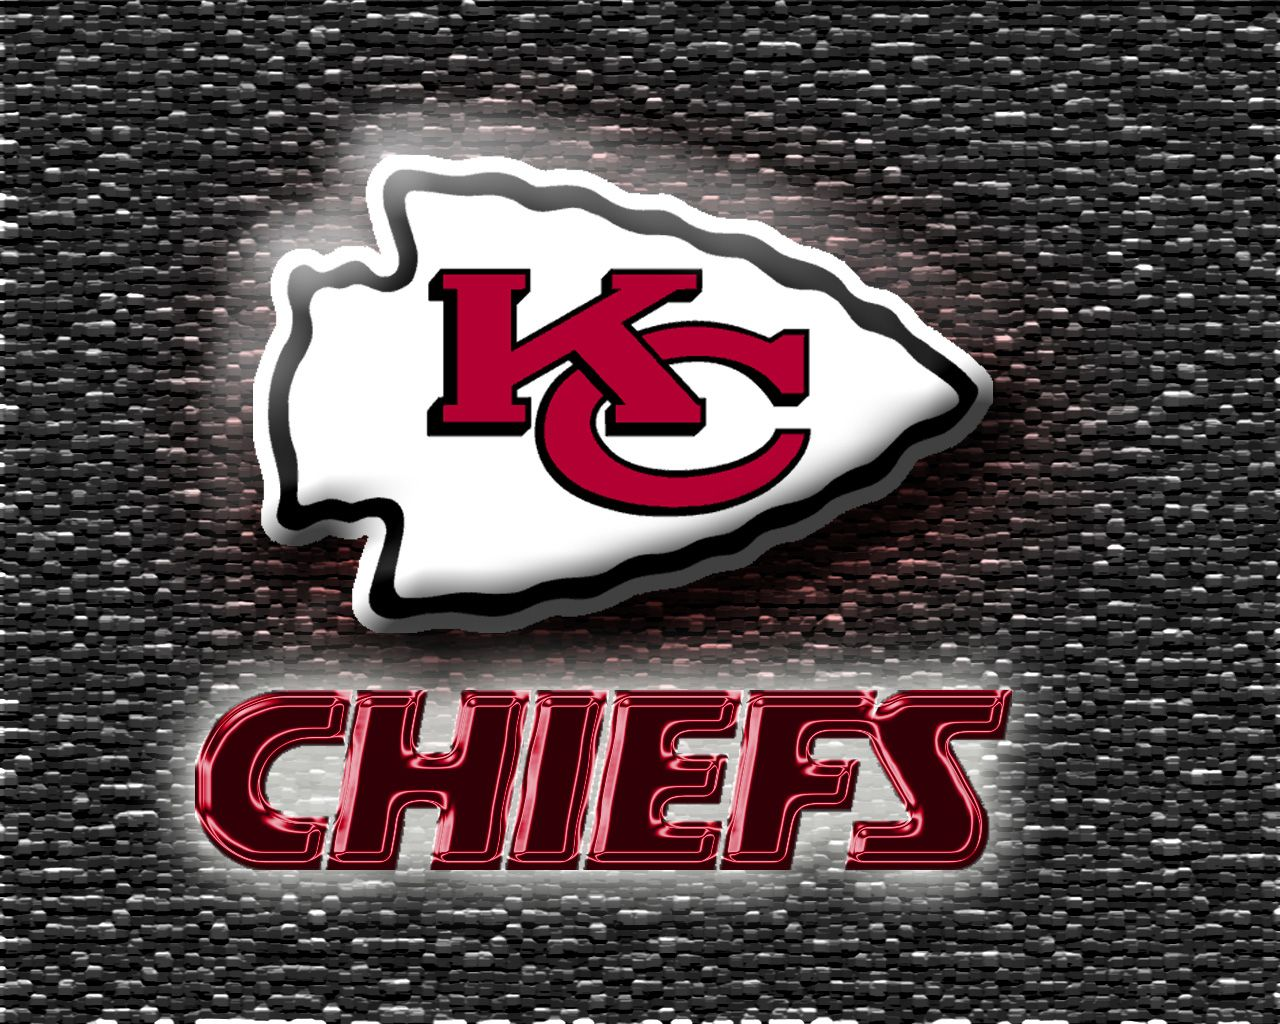 Kc Chiefs Wallpaper Chiefs Wallpaper Kansas City 1280x960 04 11 2011 Kansas City Chiefs Chiefs Wallpaper Kansas City Chiefs Kc Chiefs Football